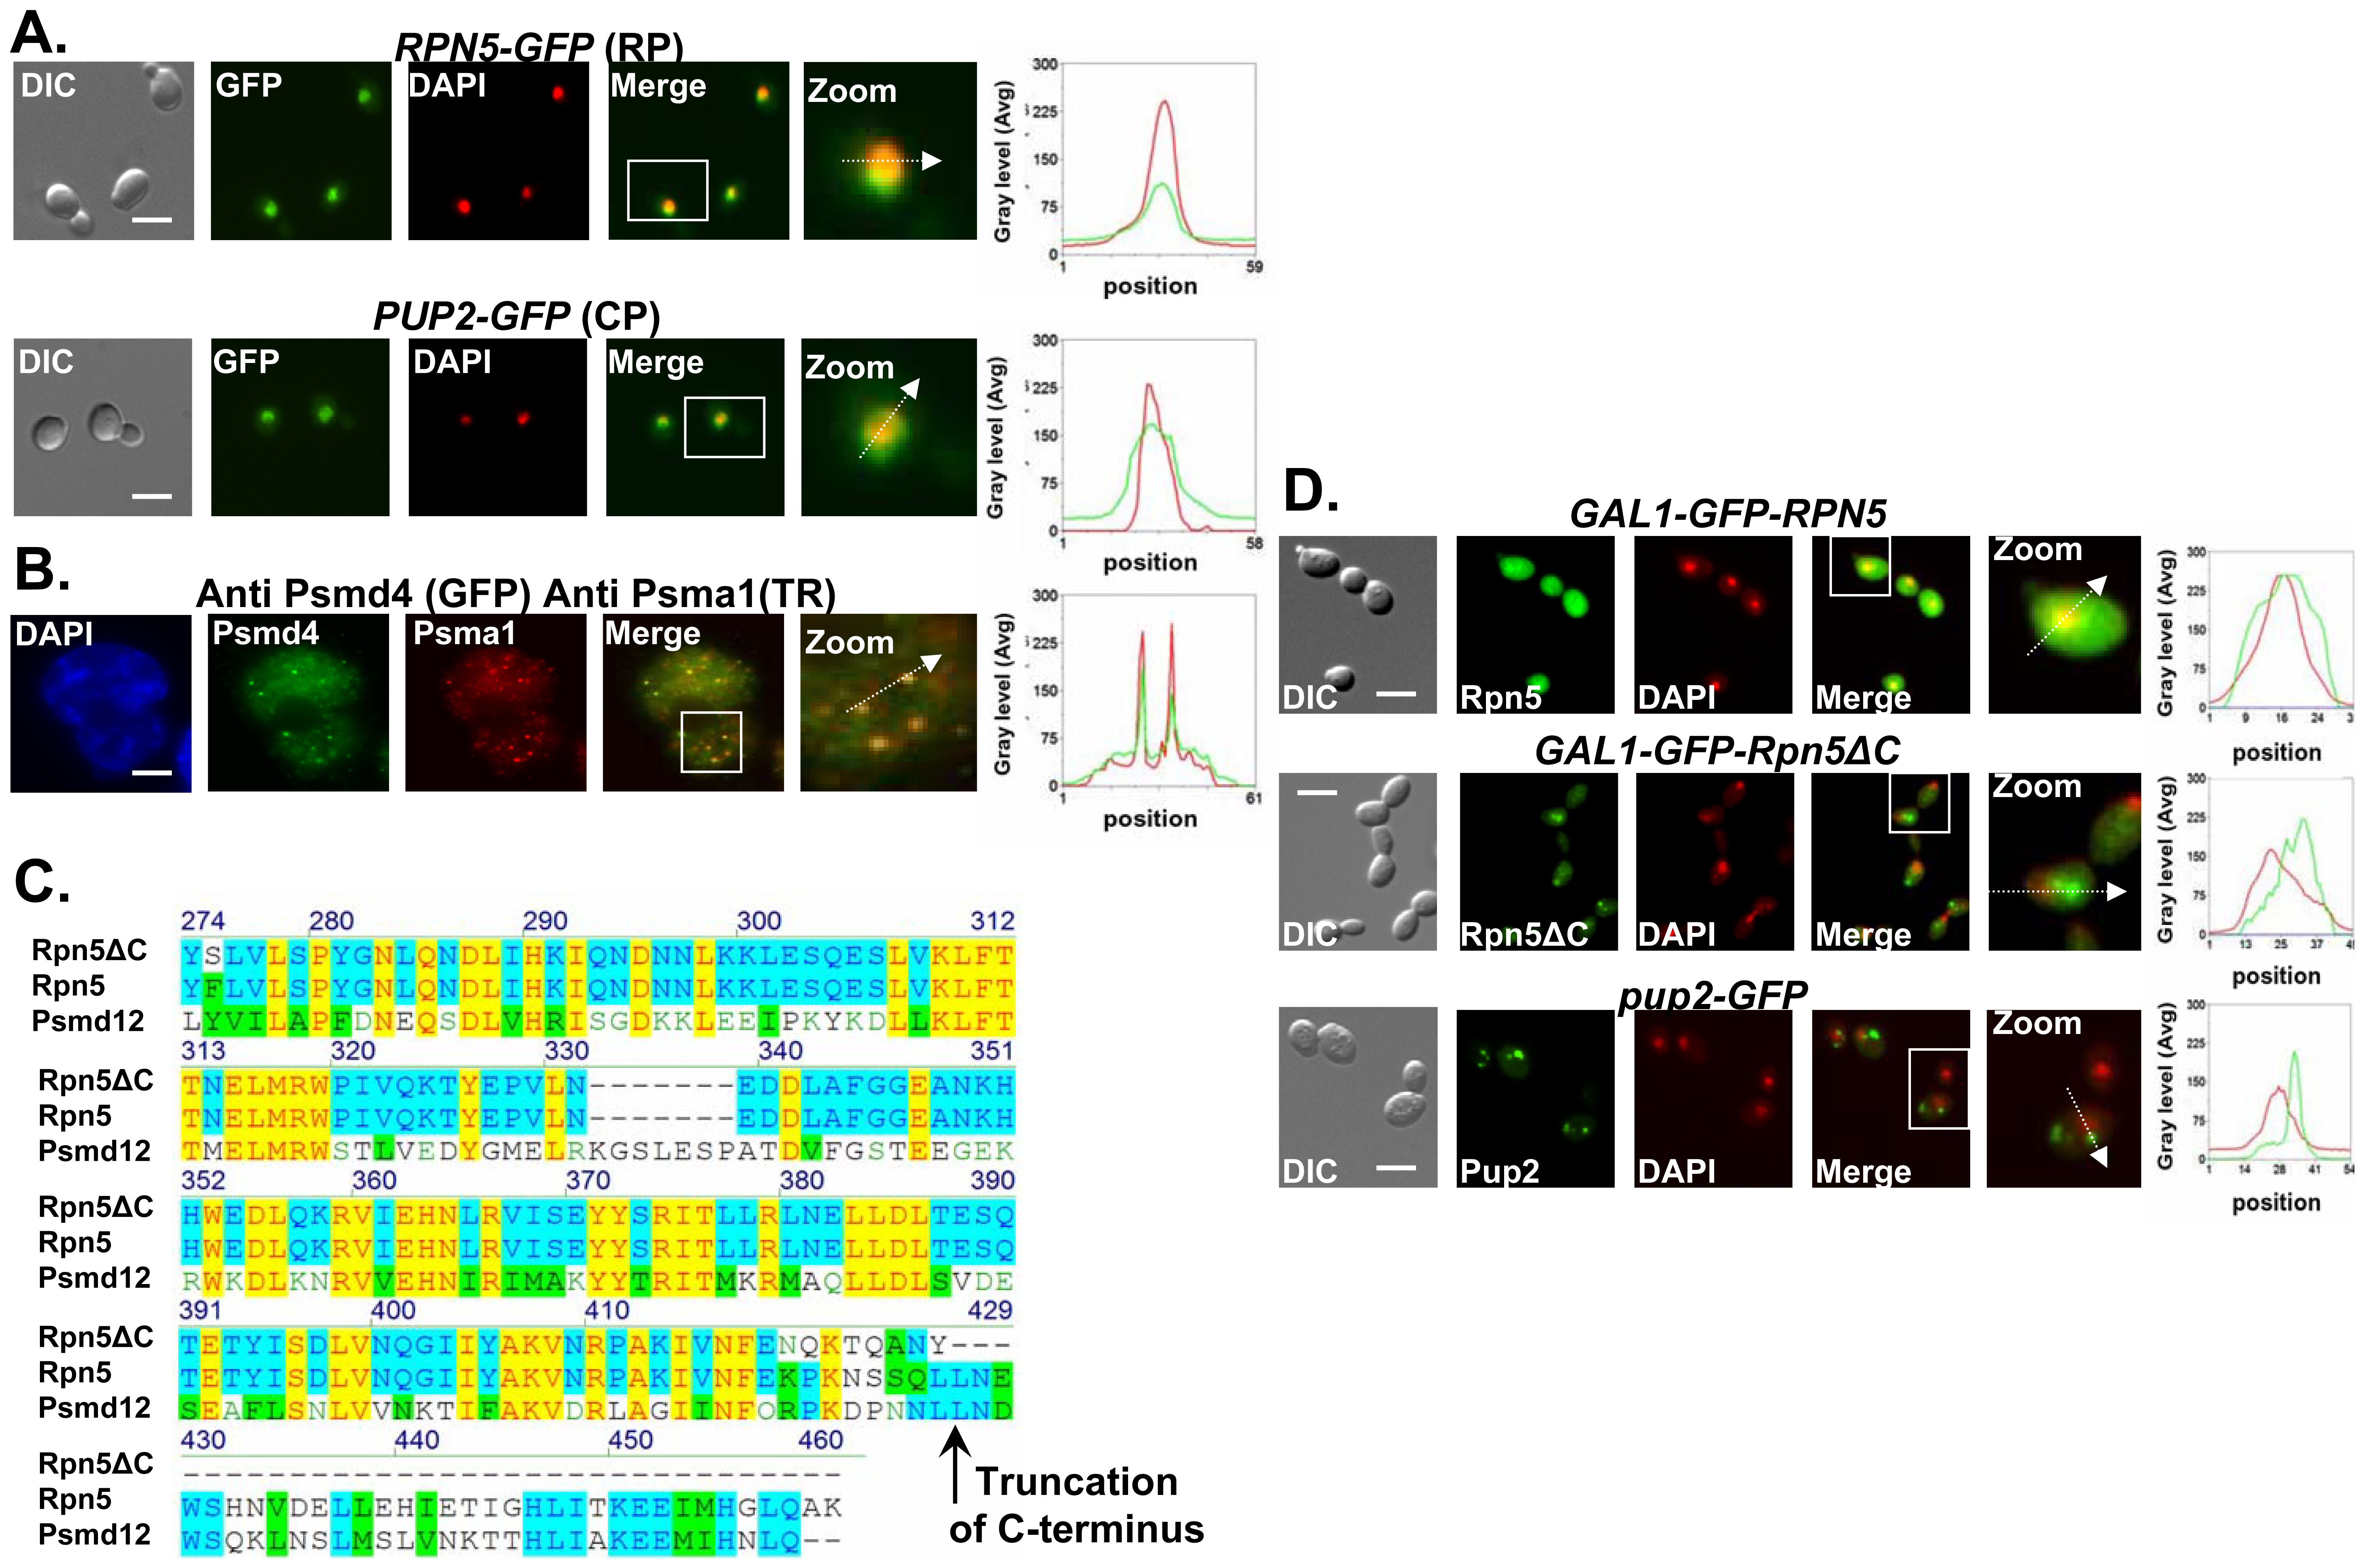 Proteasome subunits in yeast and mammalian cells localize to the nucleus; the Ts allele of <i>rpn5</i> is truncated at the C-terminus; proteasome CIN mutants show nucleus mislocalization of proteasome subunits.